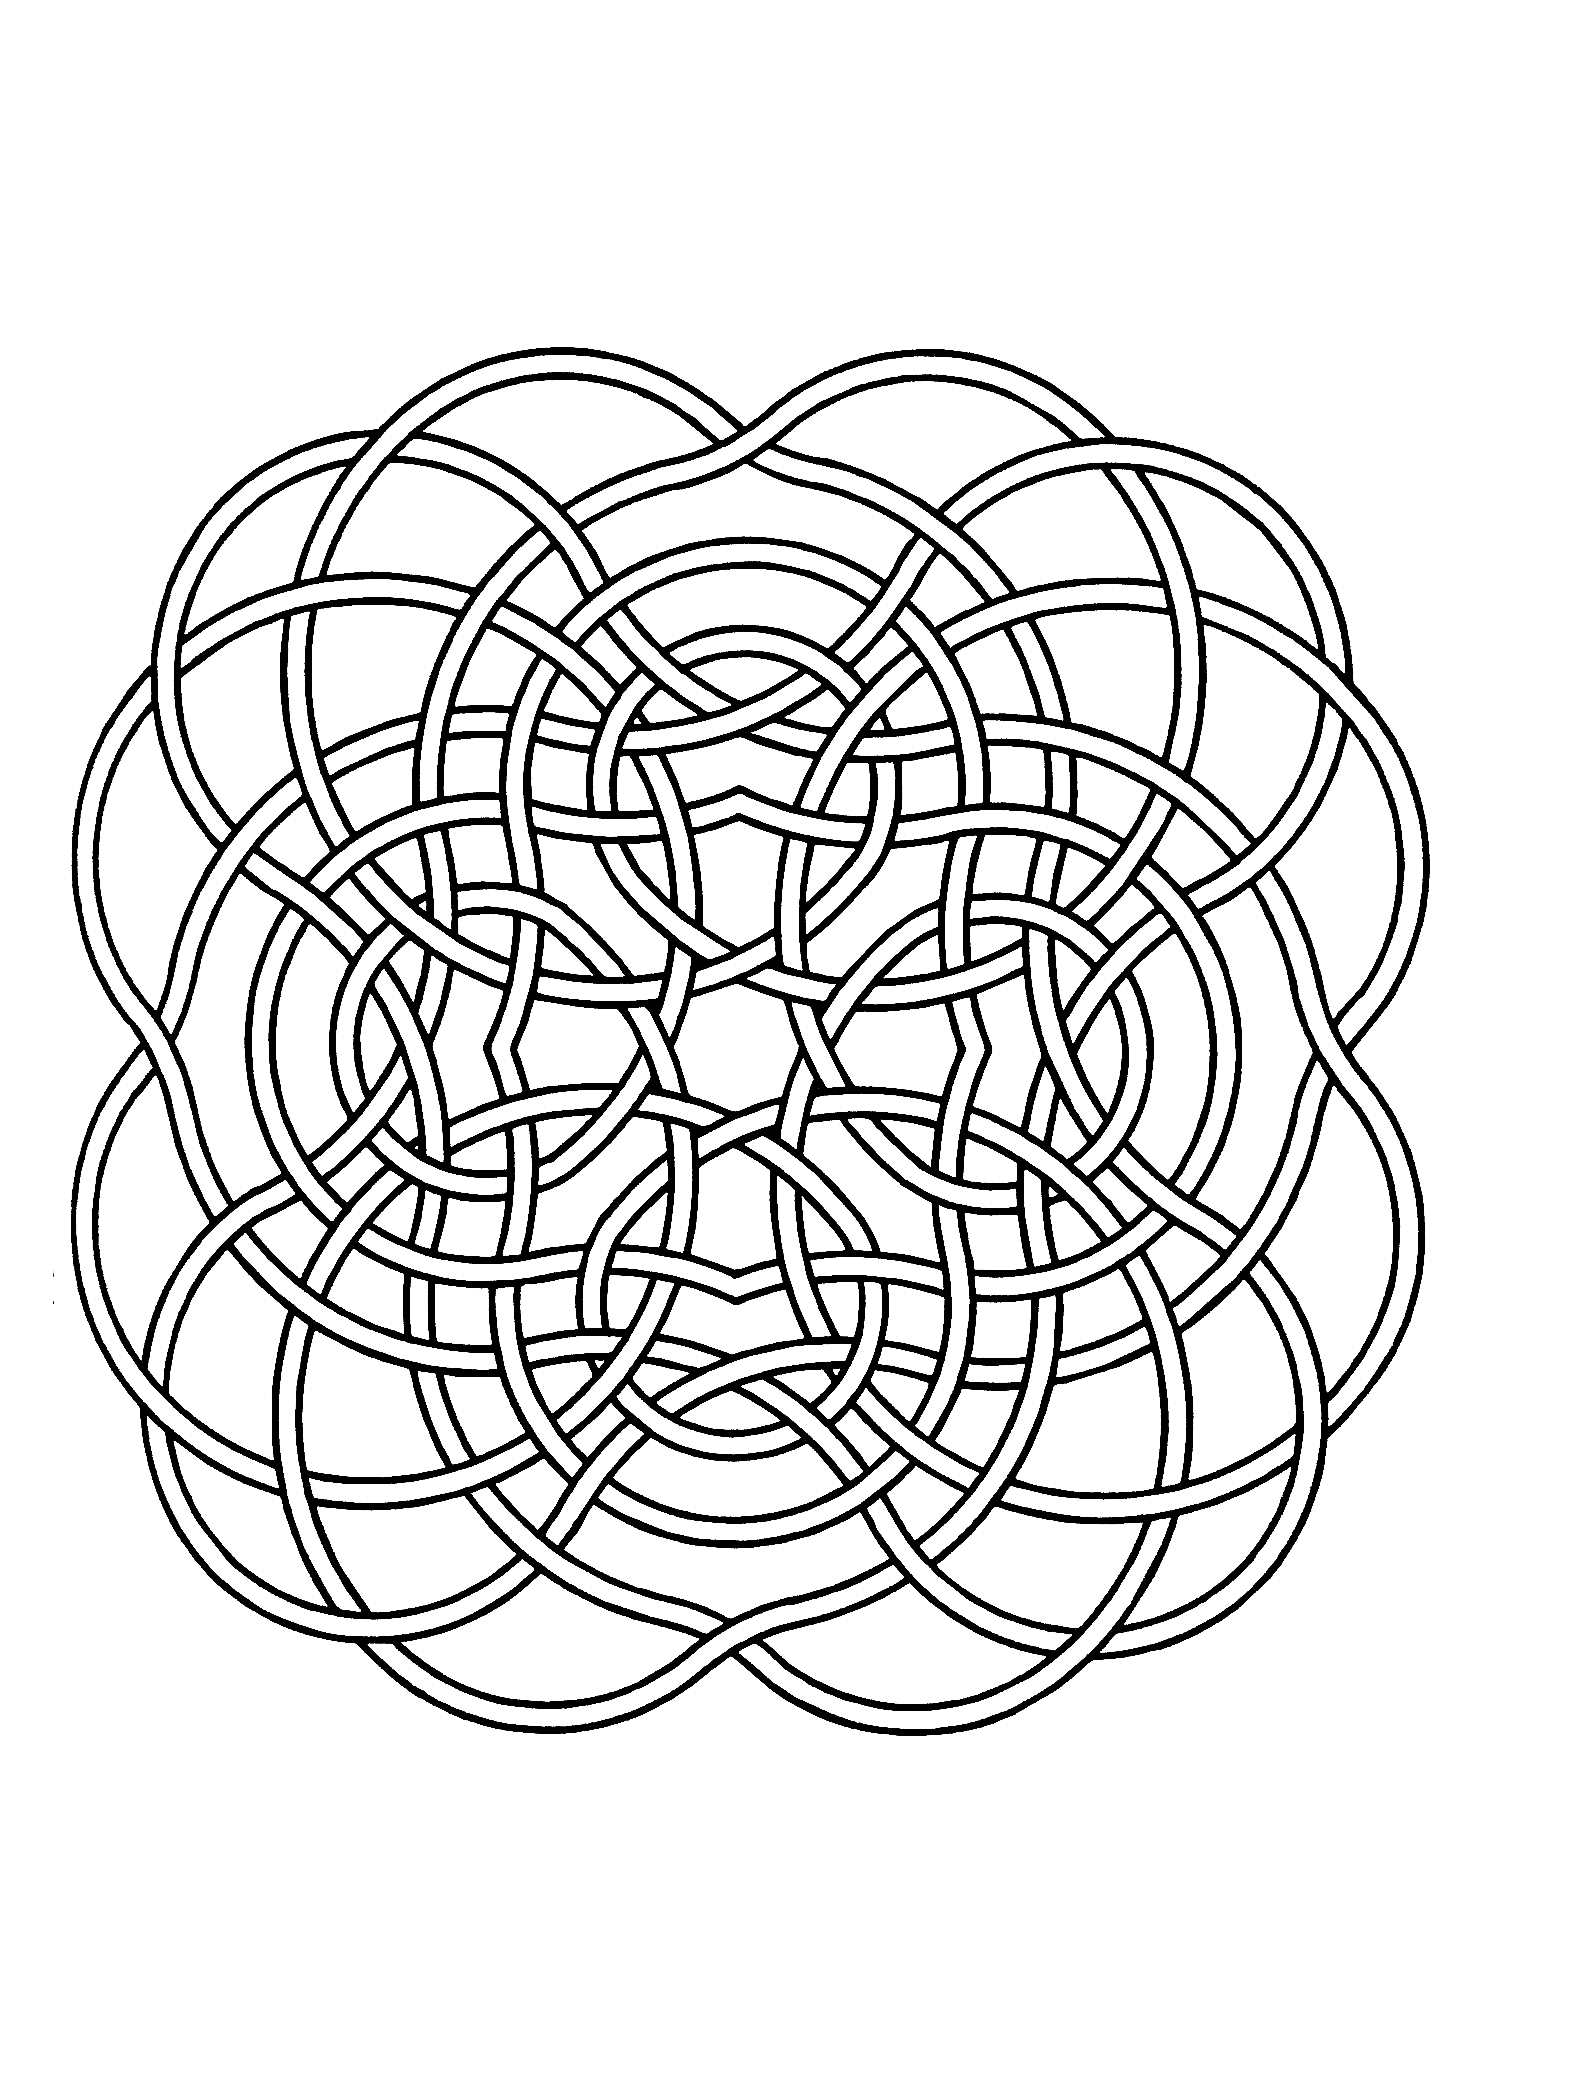 mandala colouring pages for kids simple mandala coloring page coloring home colouring pages mandala for kids